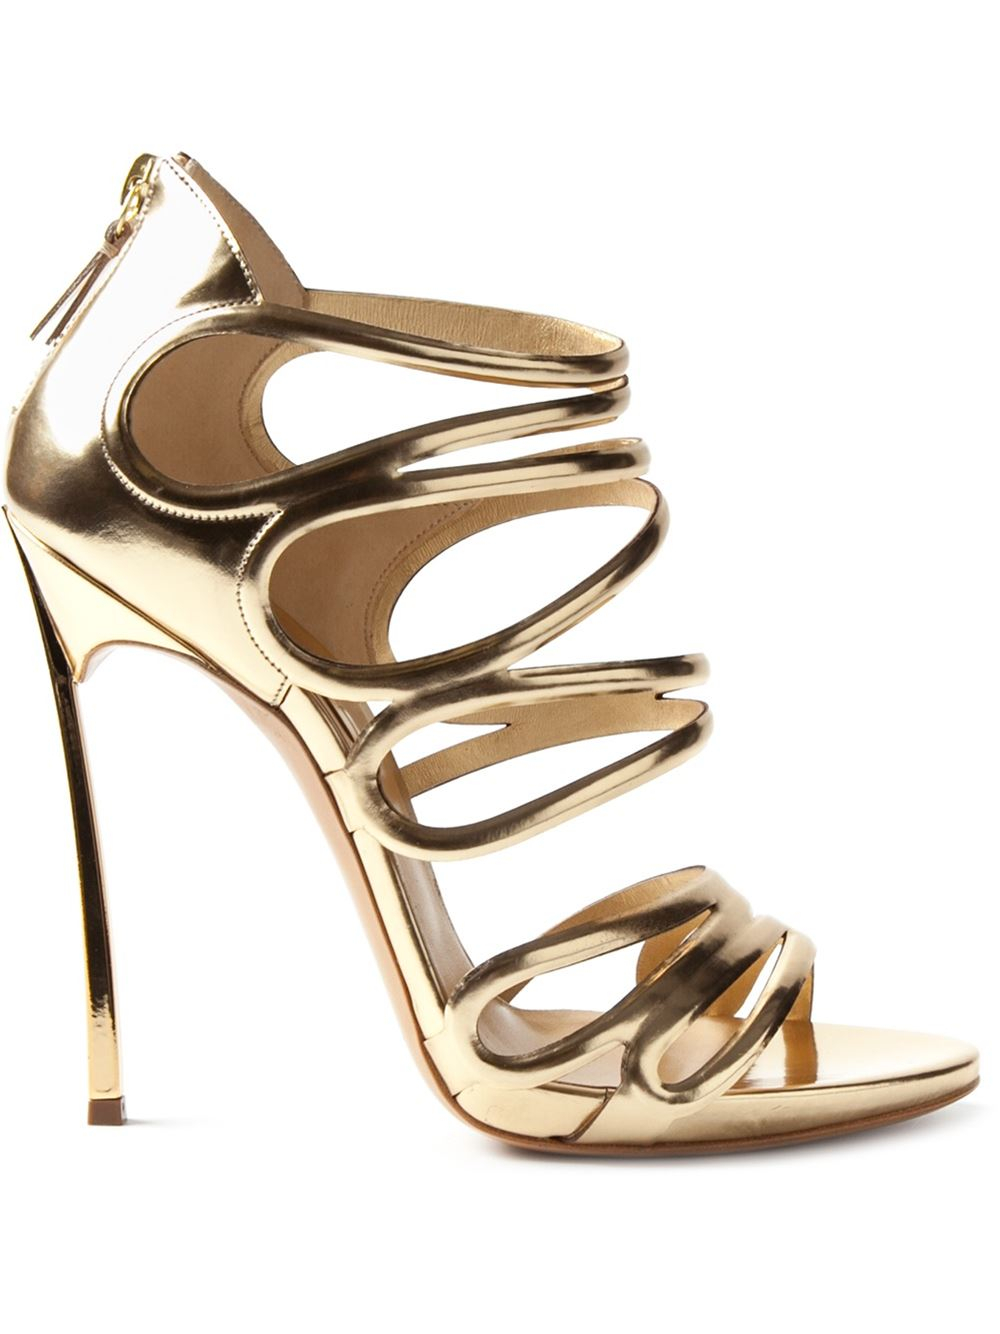 43cbb03608 Casadei Blade Sandals in Metallic - Lyst